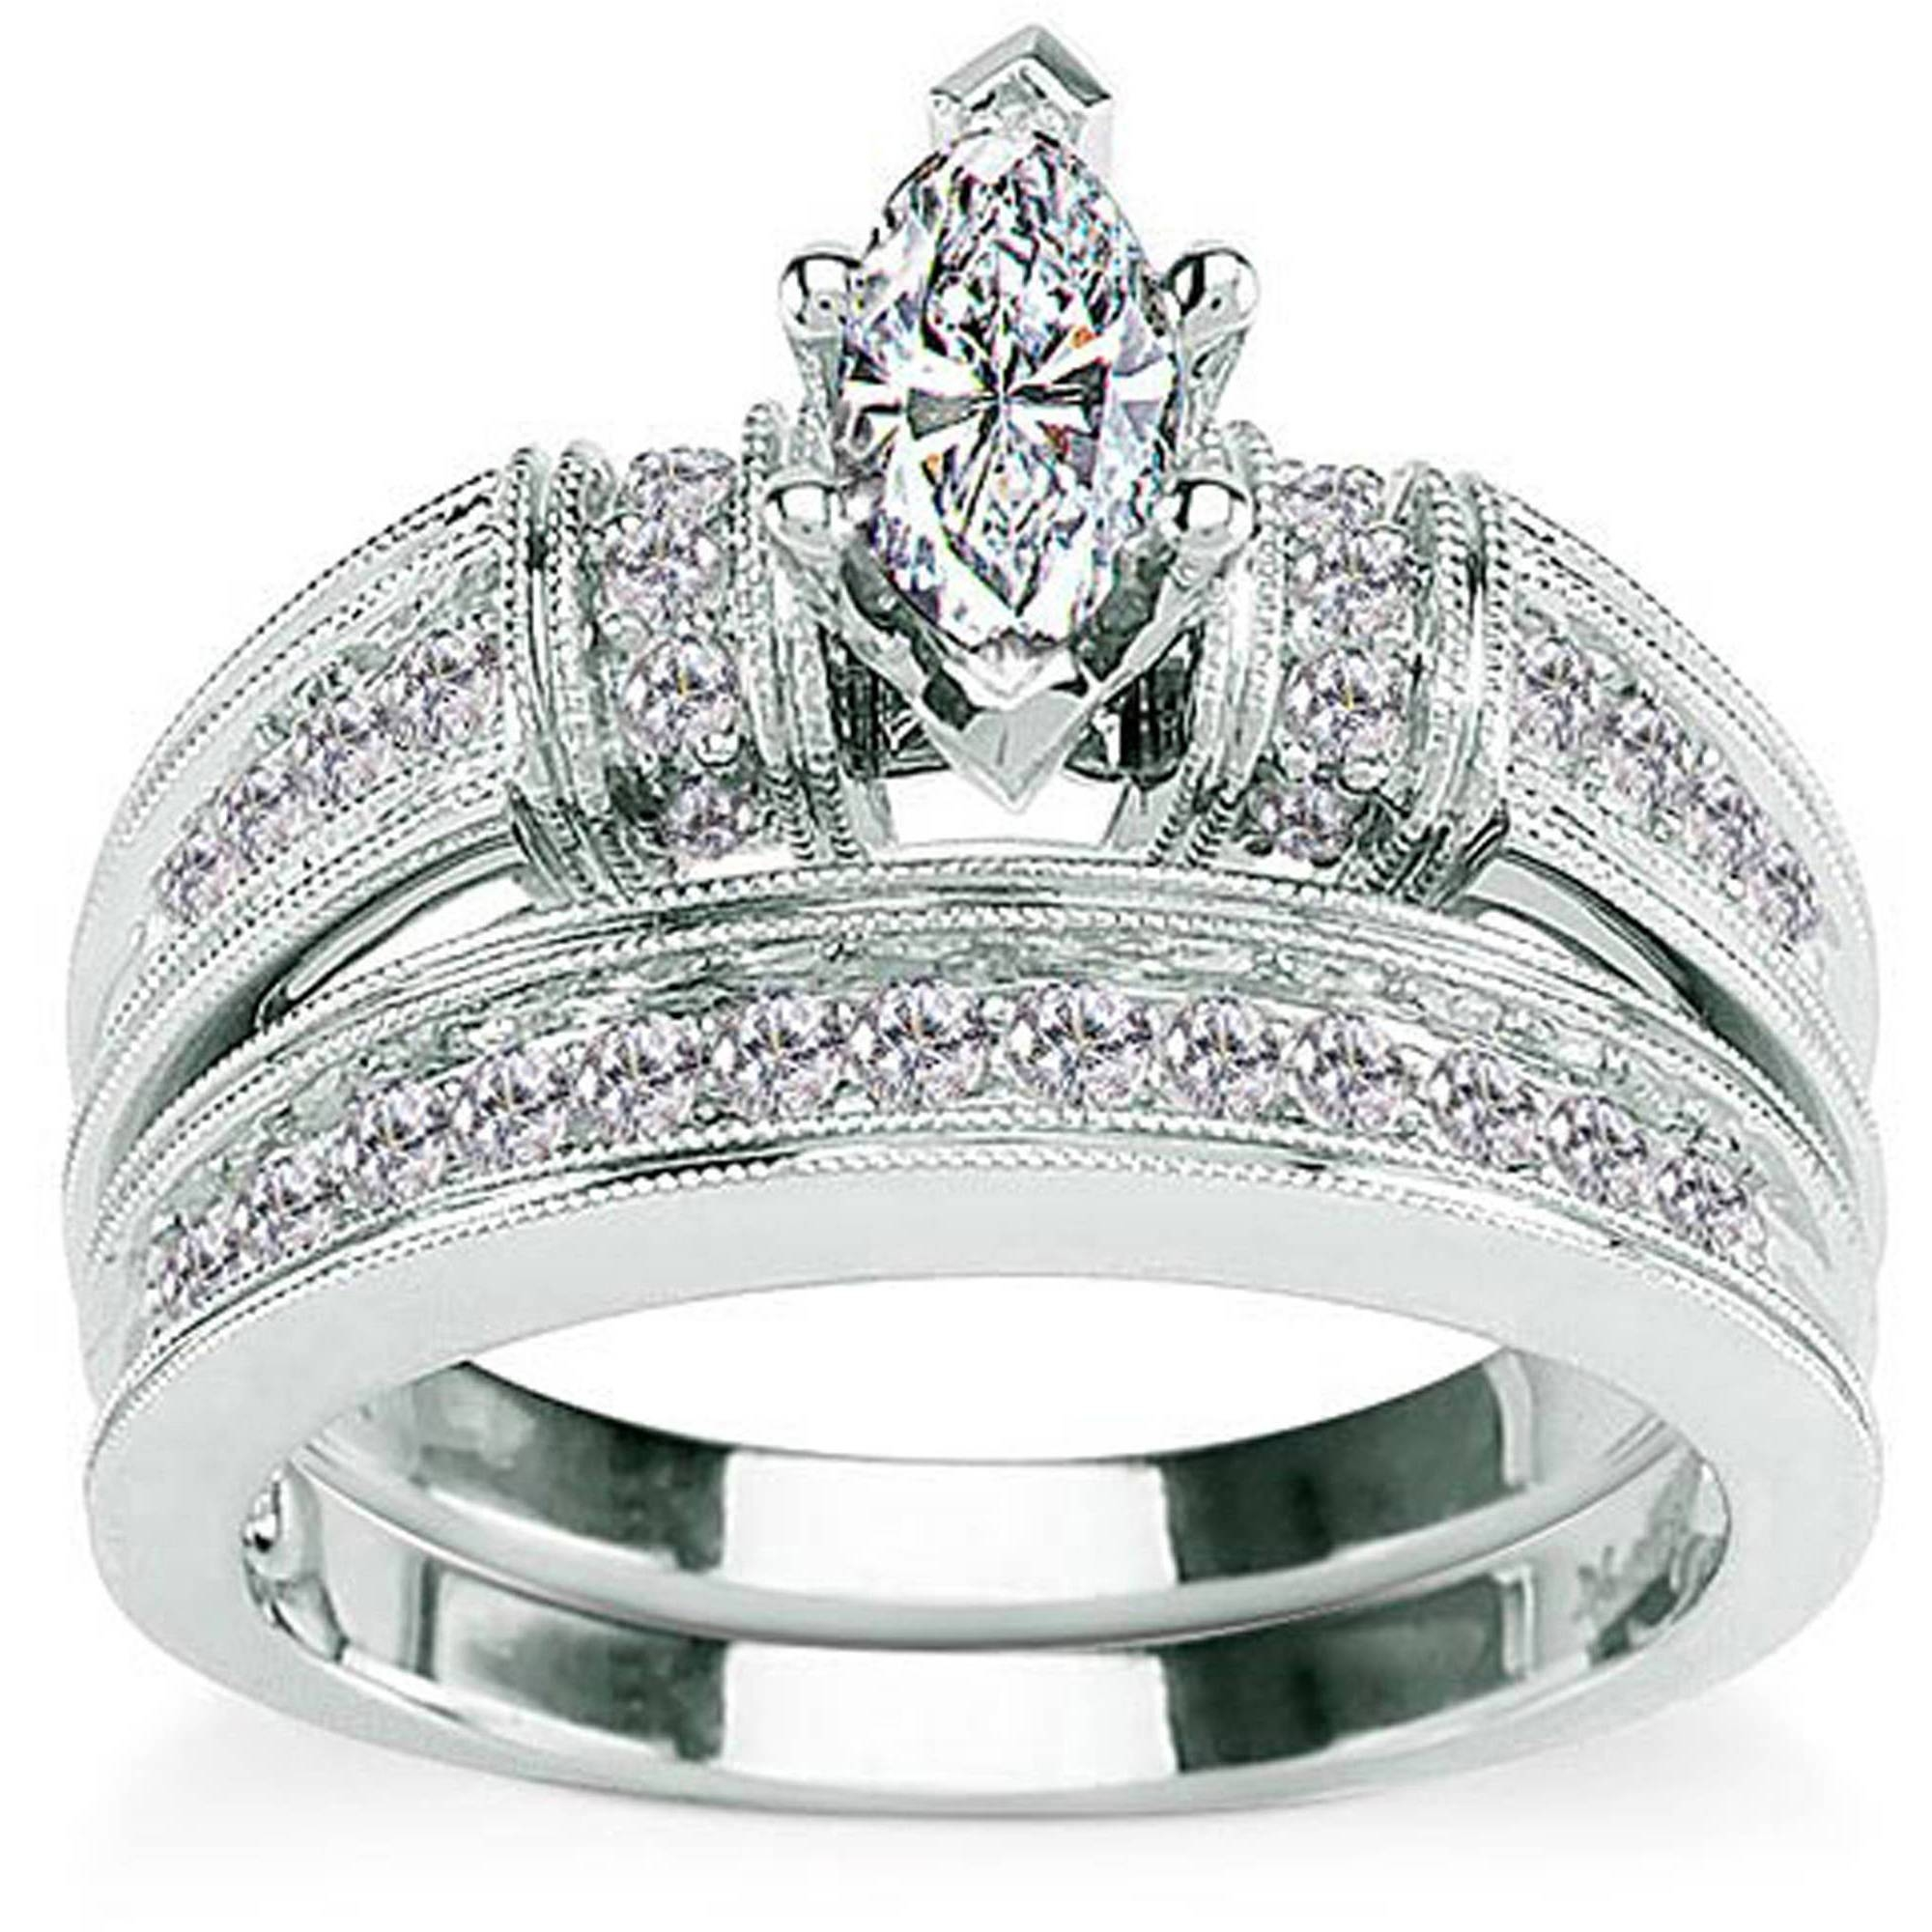 Miabella 5 3/5 Carat T.g.w (View 11 of 15)